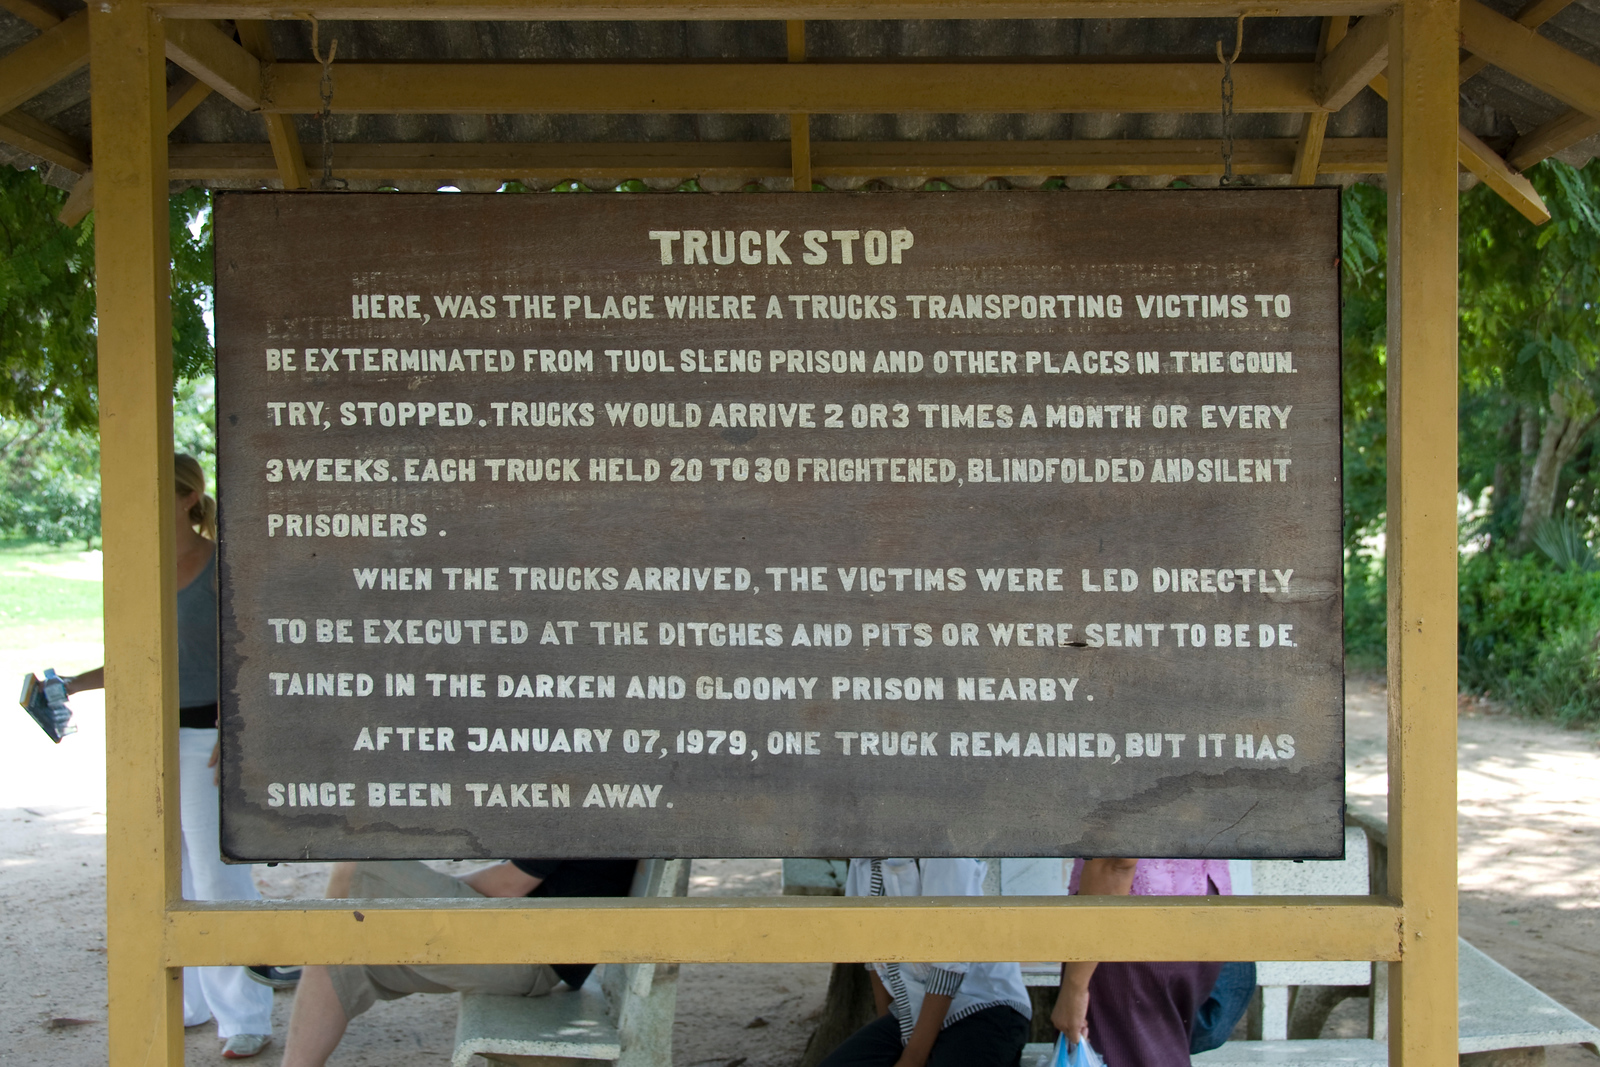 Sign at the truck stop of Killing Fields in Phnom Penh